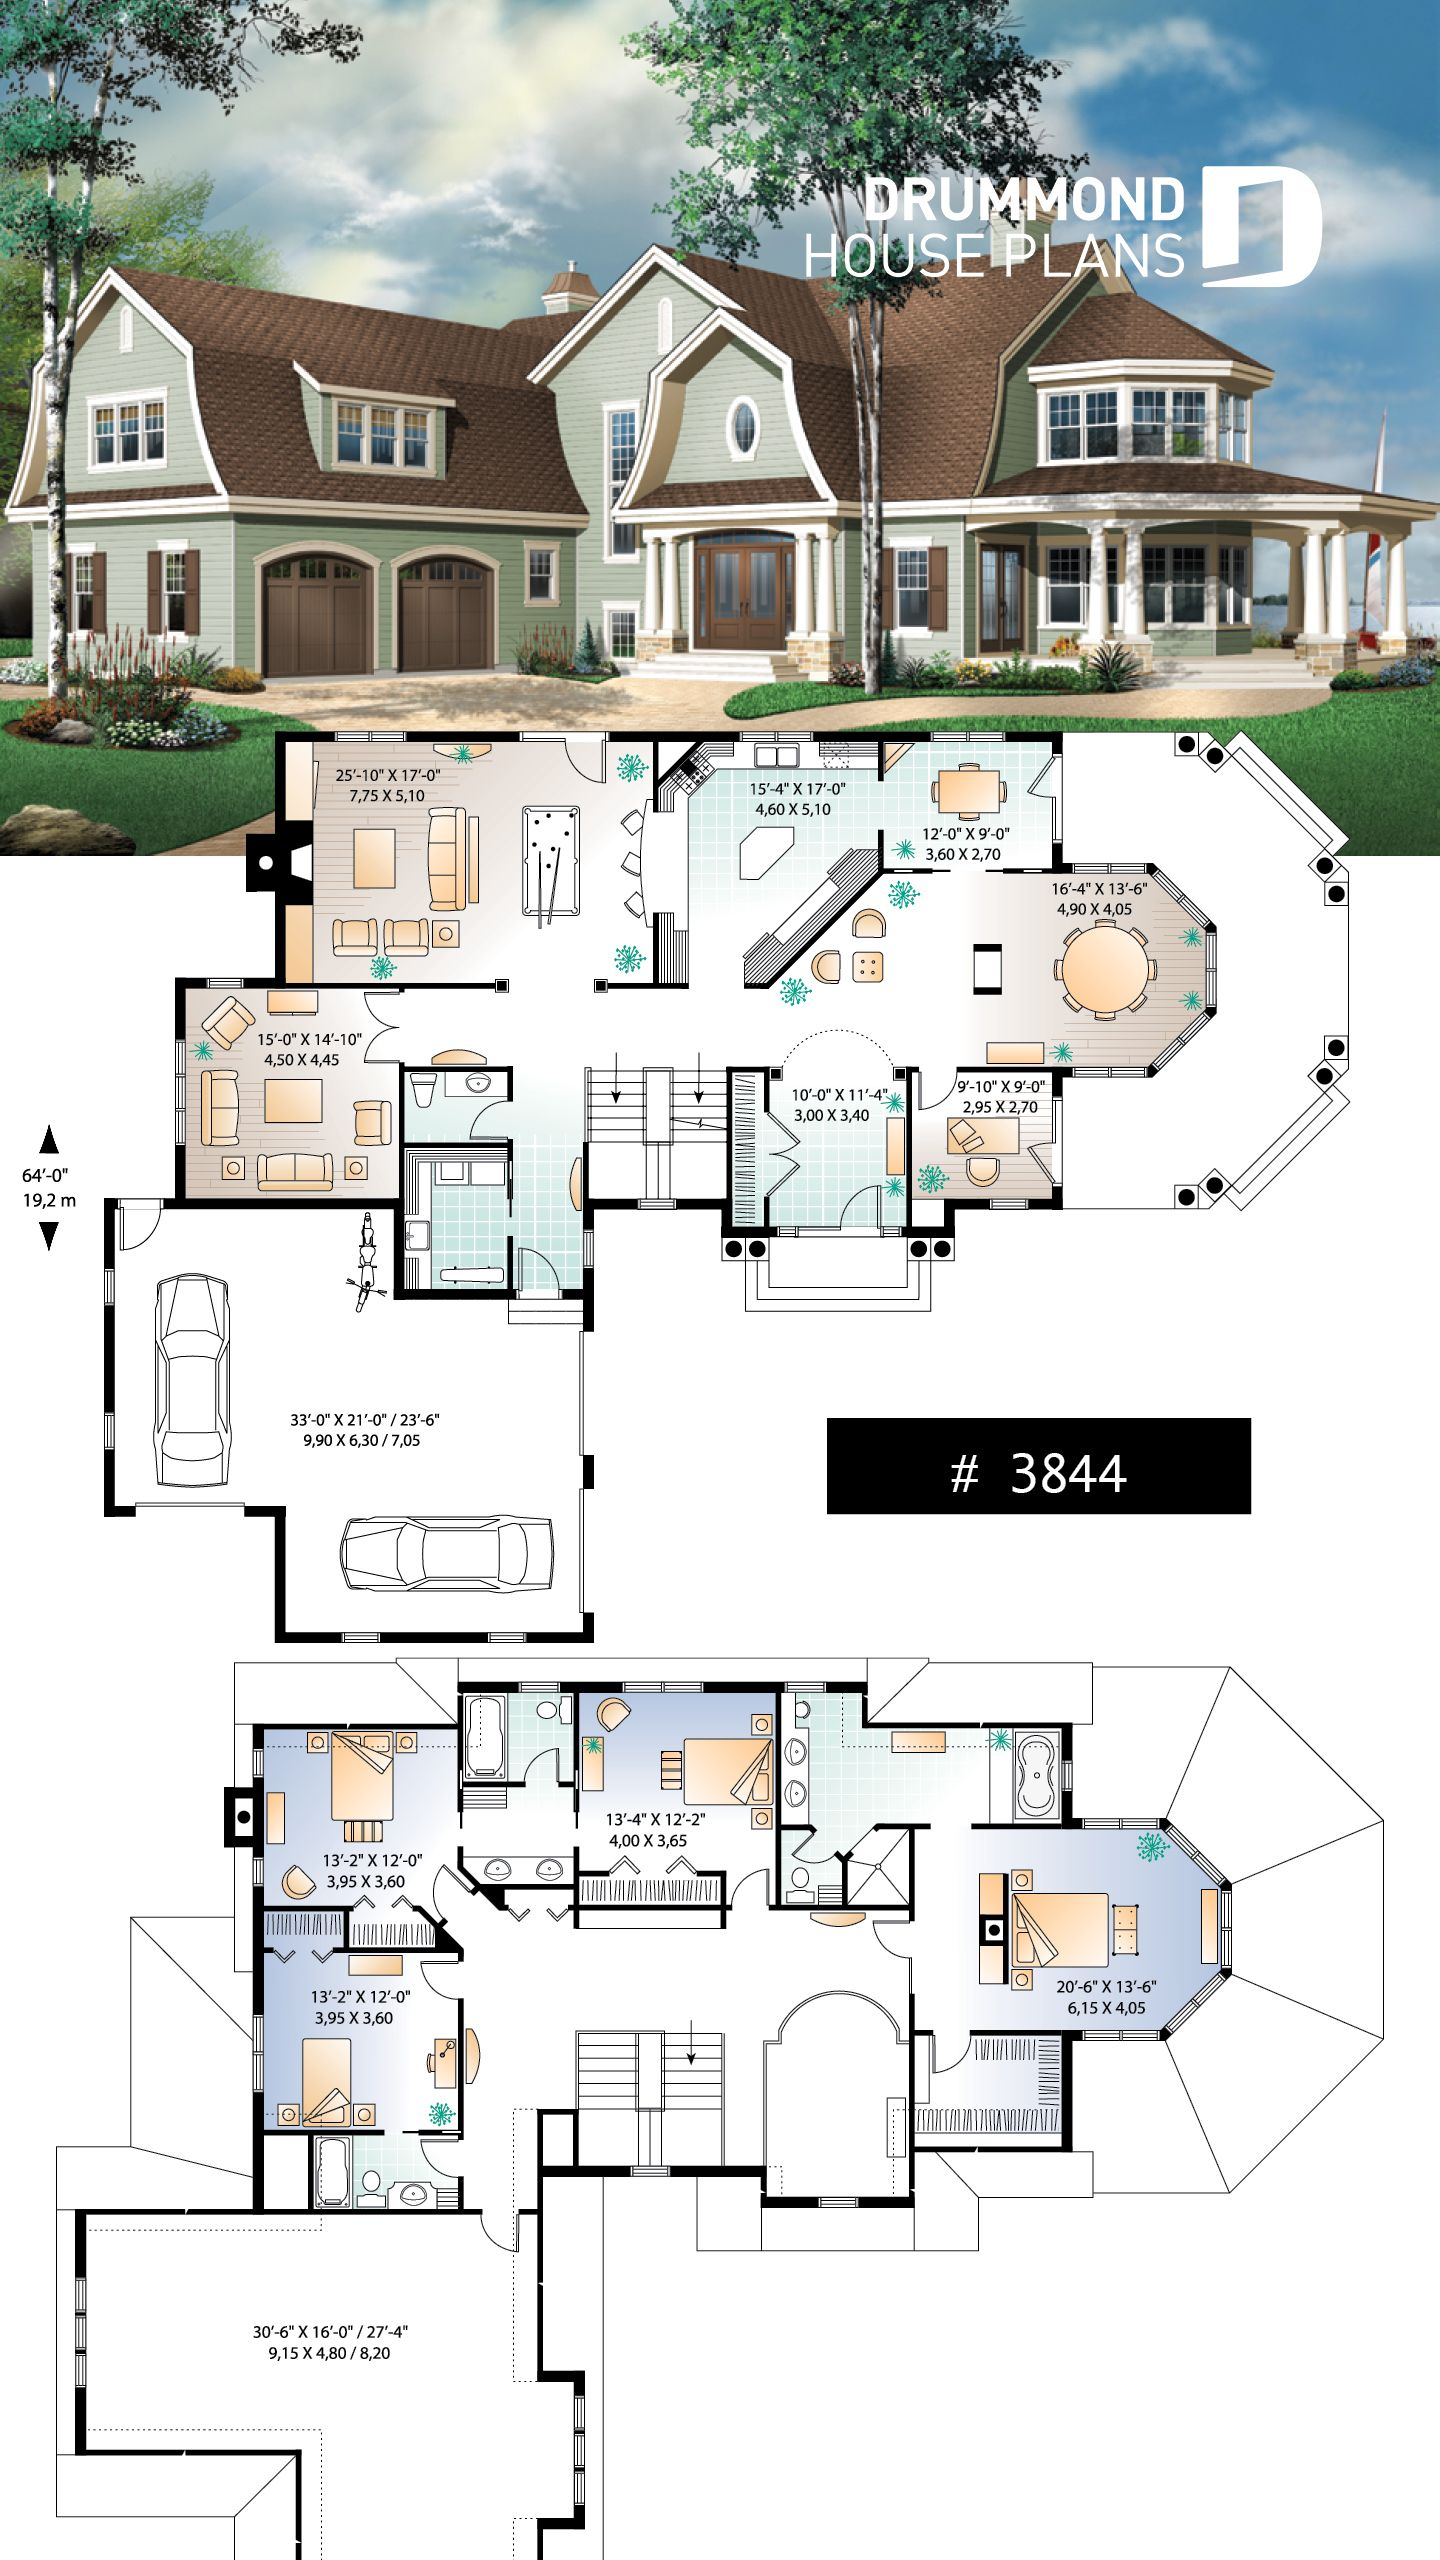 Discover The Plan 3844 The Rotunda Which Will Please You For Its 5 6 4 Bedrooms And For Its Cape Cod Styles House Plans Sims House Design House Blueprints